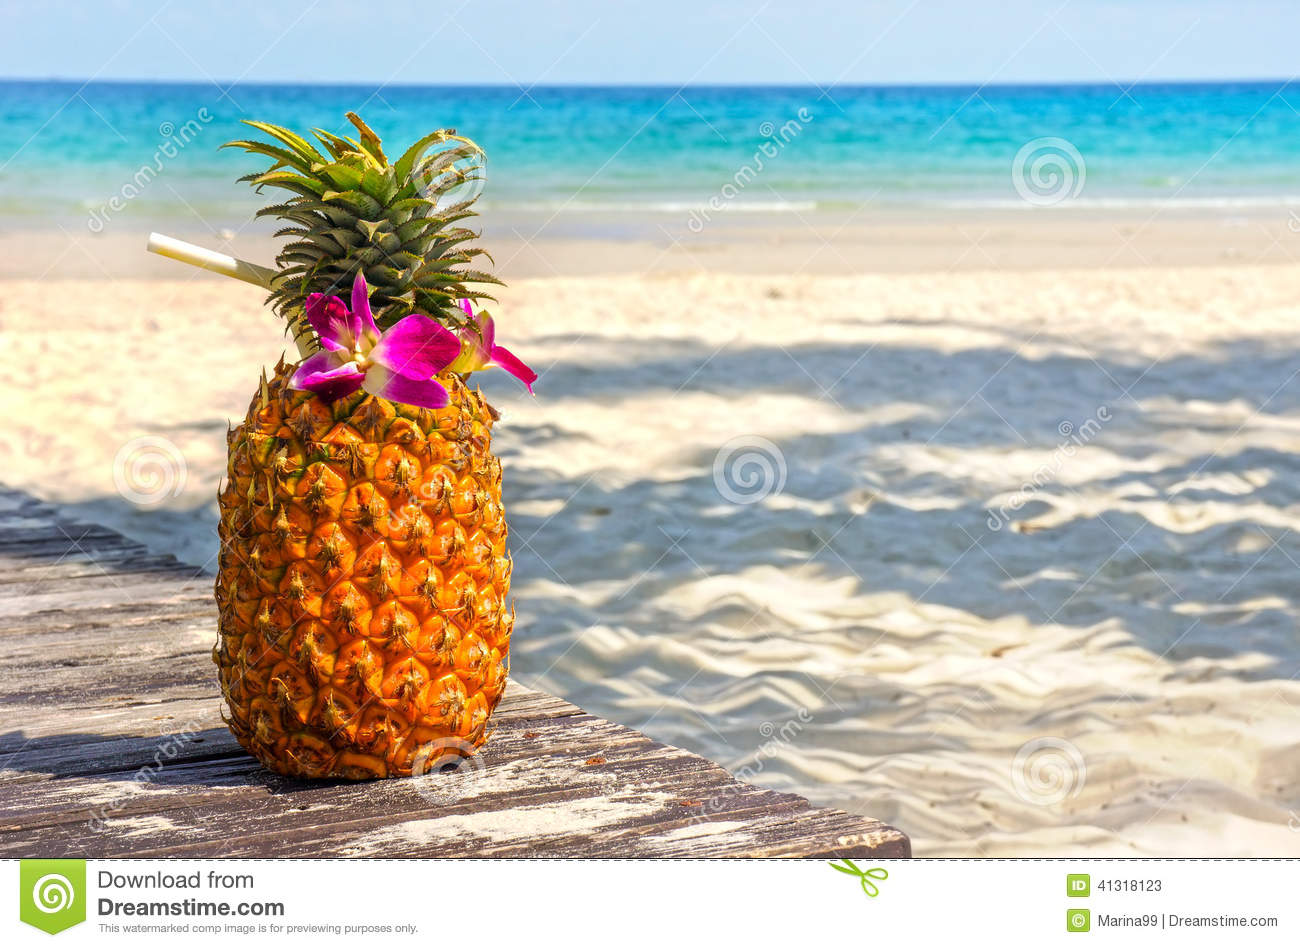 Pineapple At The Beach: Tropical Exotic Pineapple Cocktail At The Beach Stock